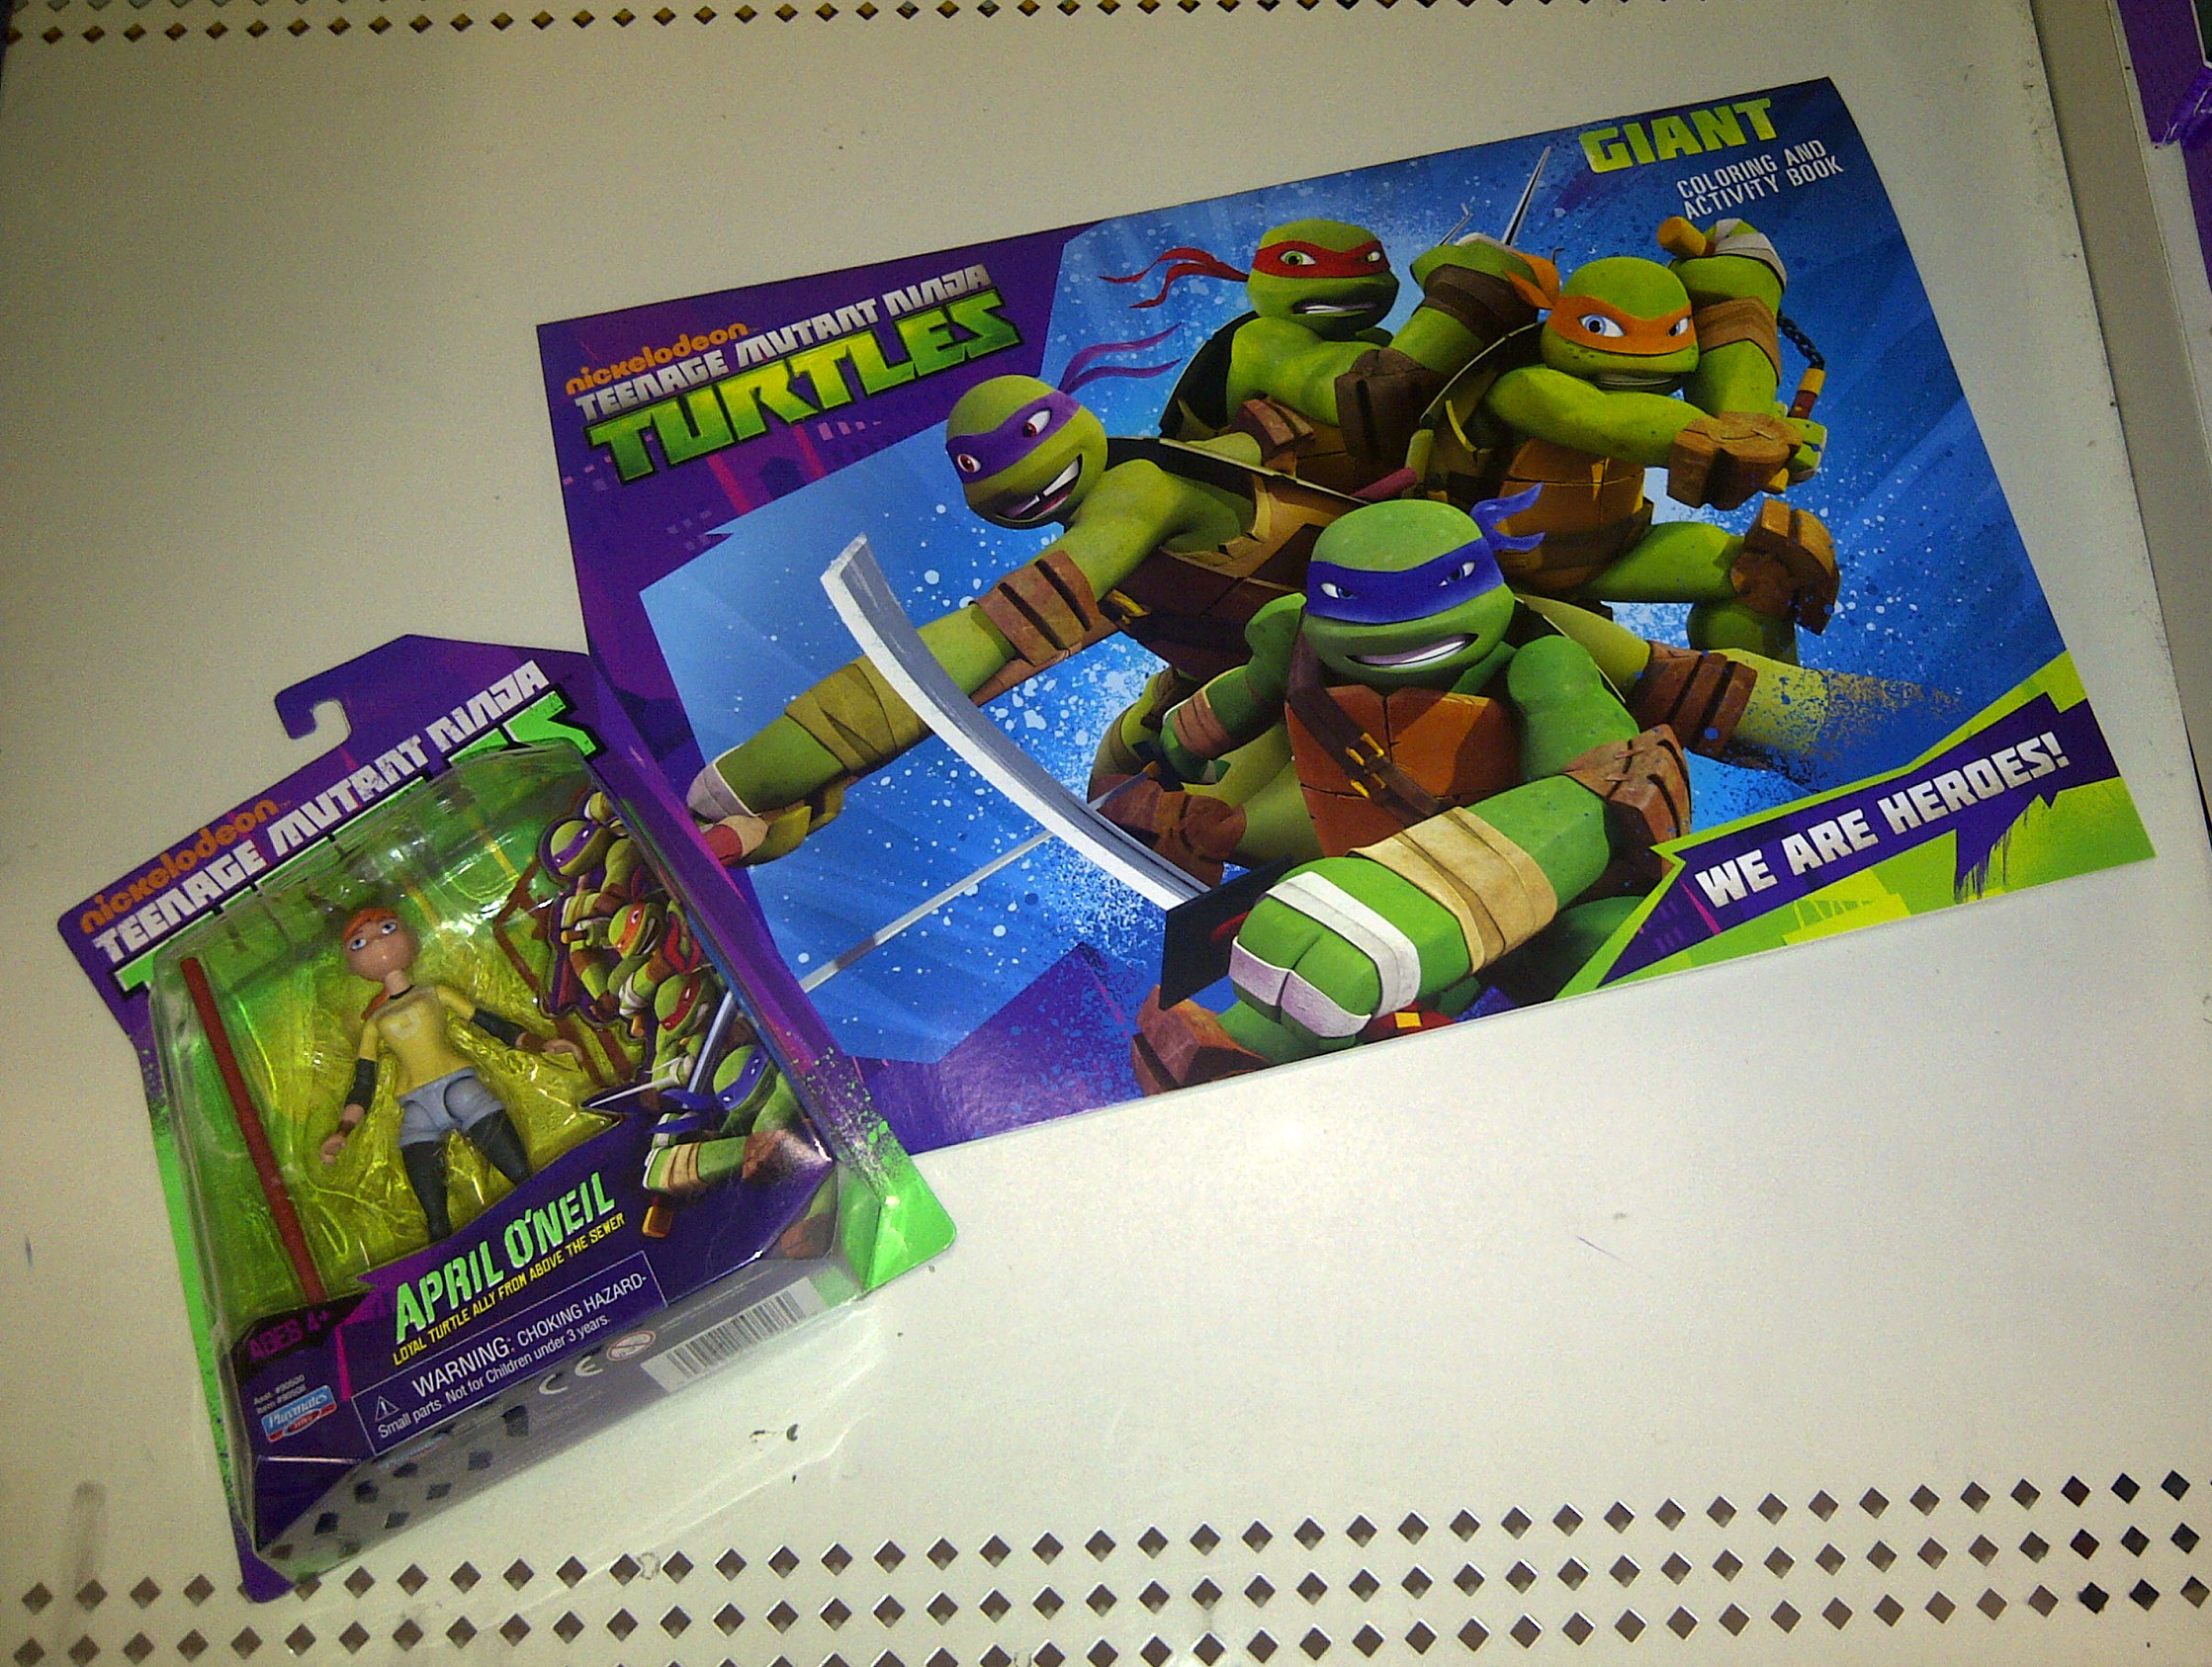 teenage mutant ninja turtles giant coloring book only 1 - Giant Coloring Book